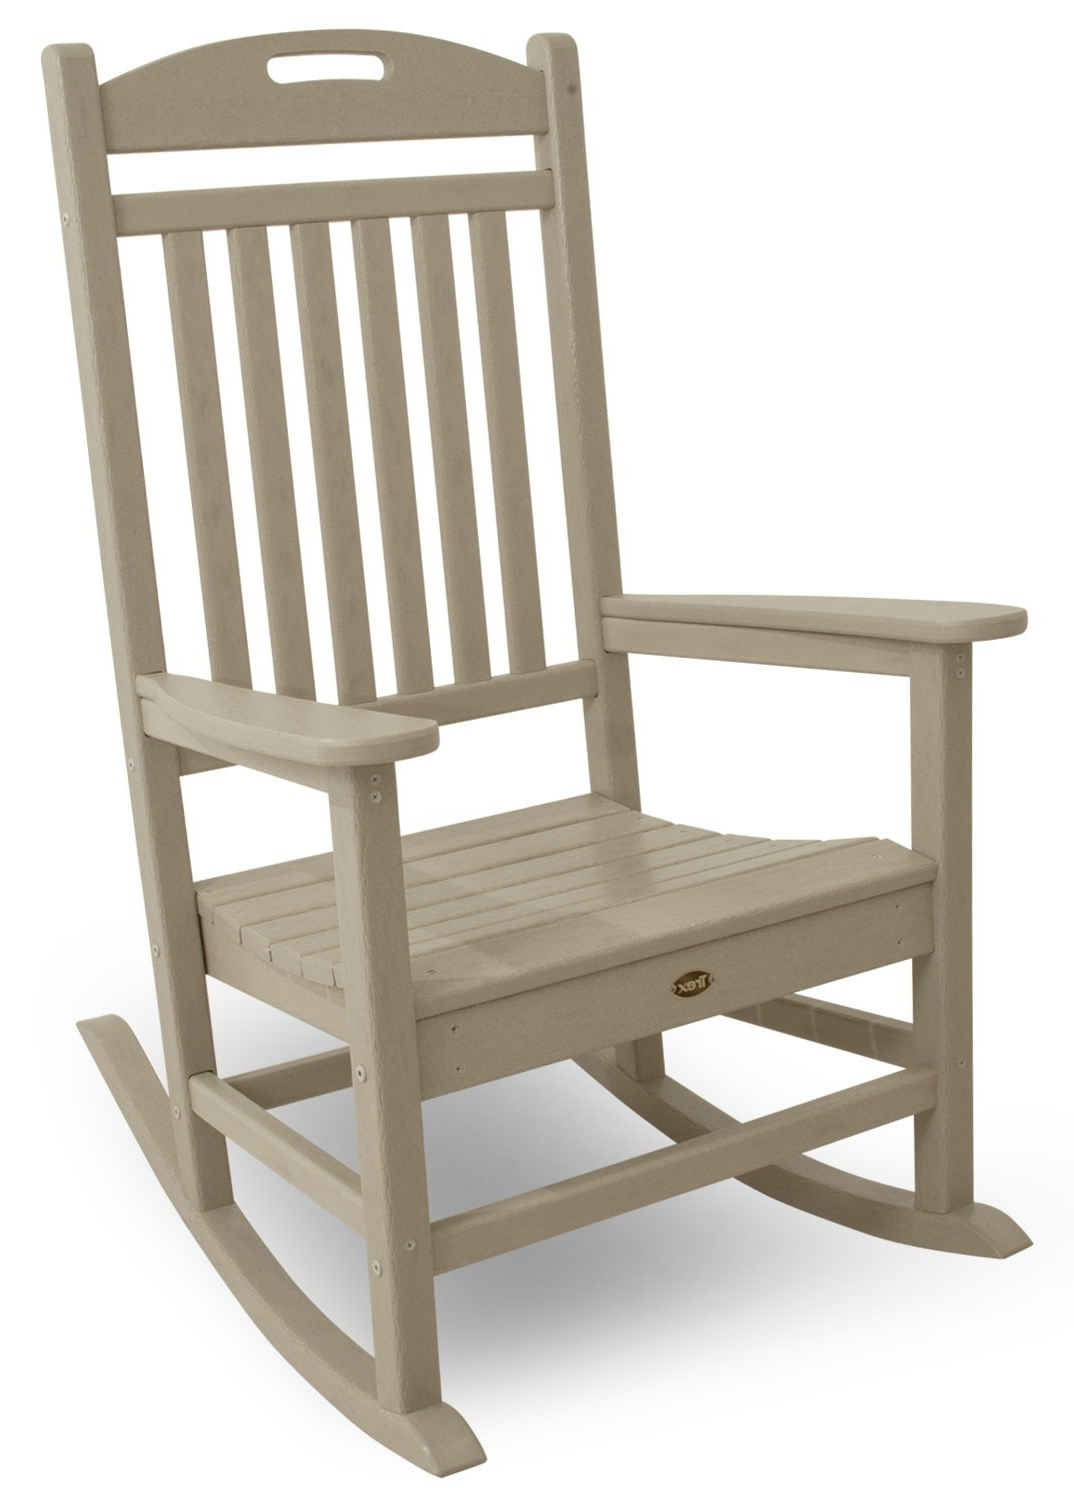 Most Recently Released Yacht Club Rocking Chair Pertaining To Patio Rocking Chairs And Gliders (View 19 of 20)